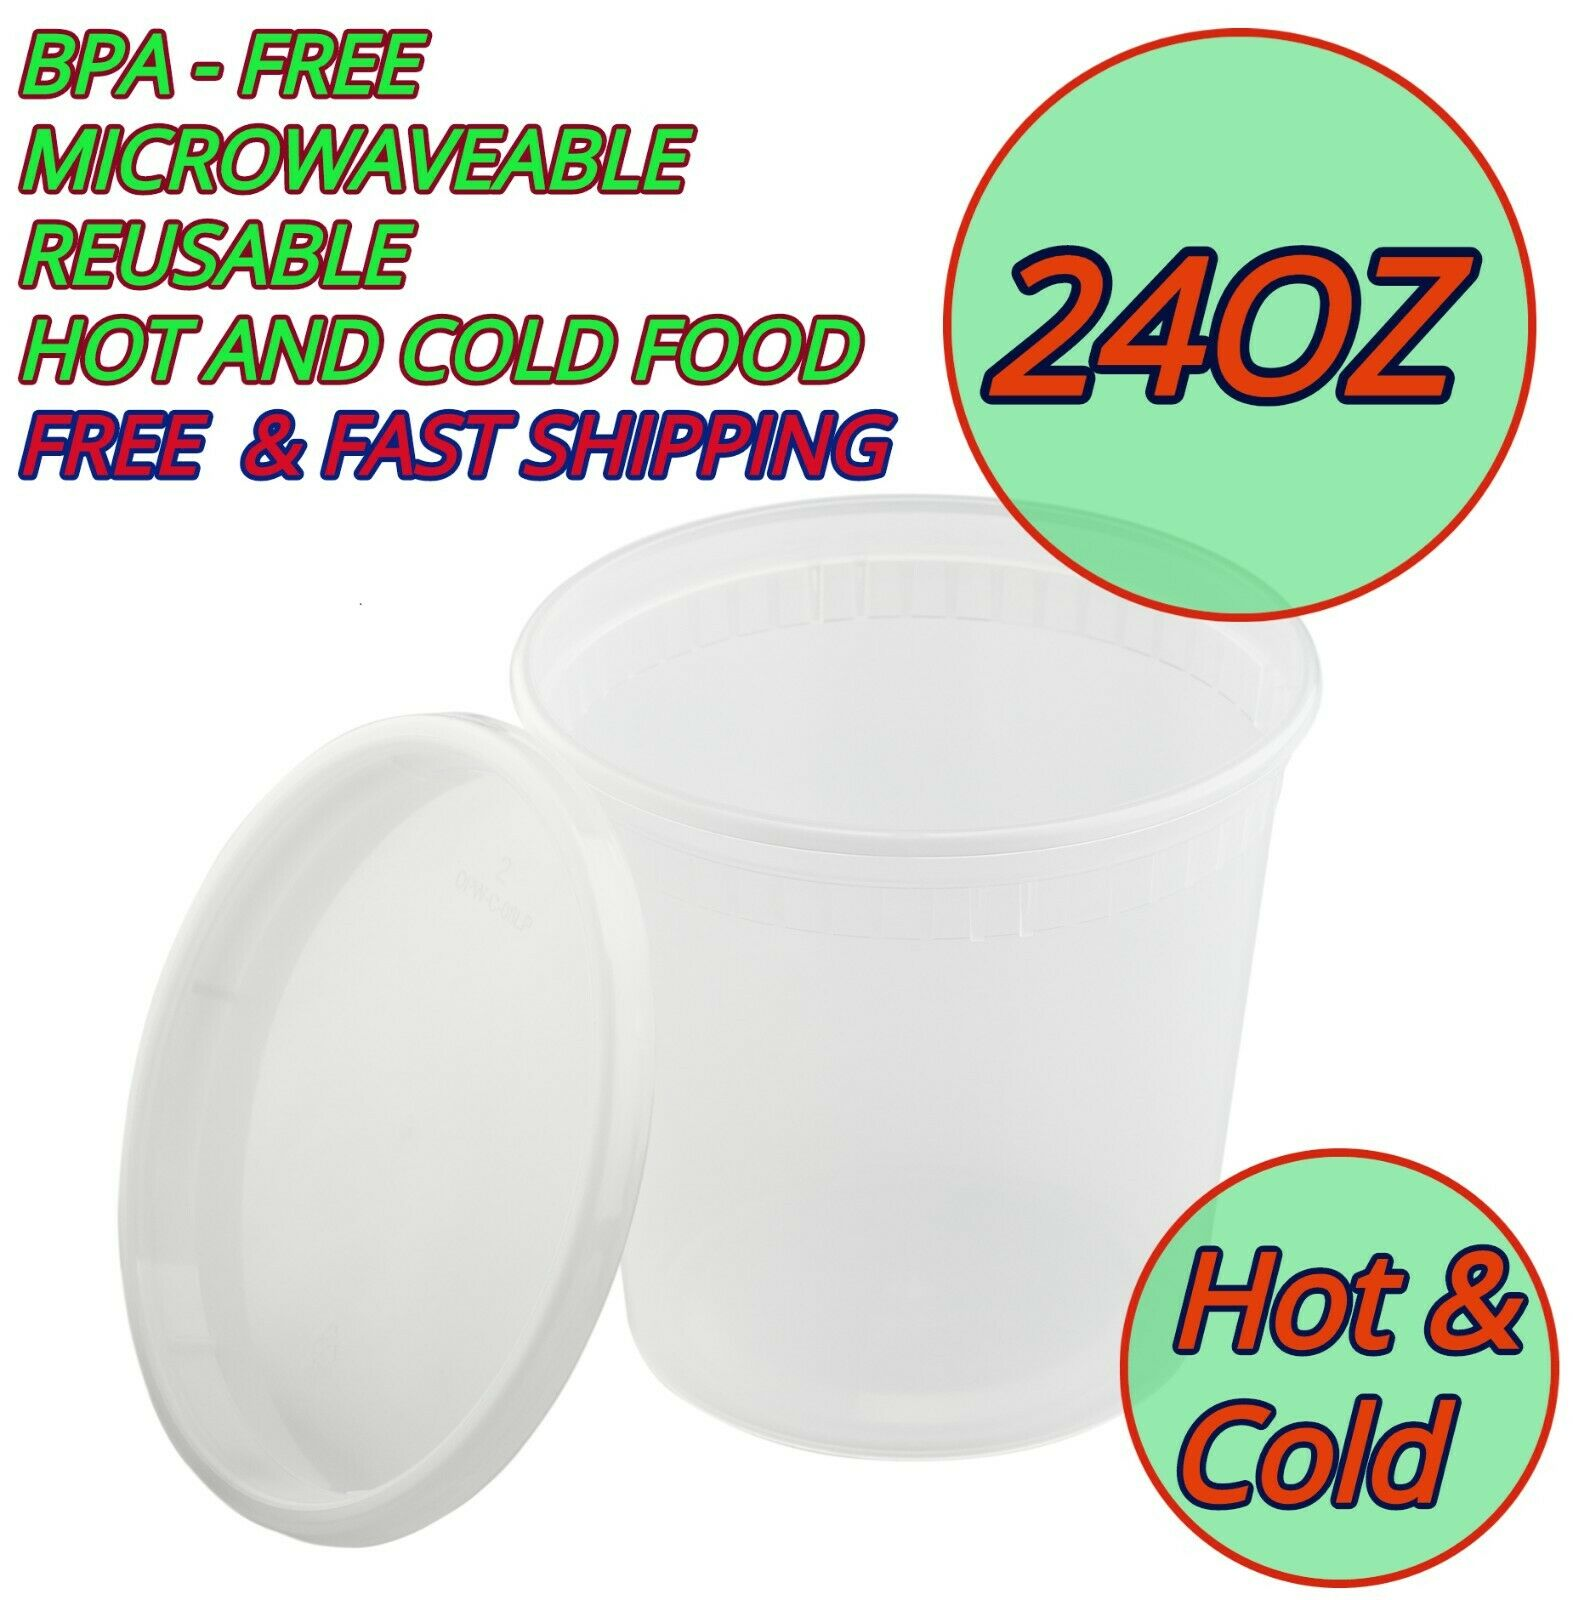 50 x 8oz Hot//Cold Deli Clear Containers//Pots Microwavable Re-usable w//Lids